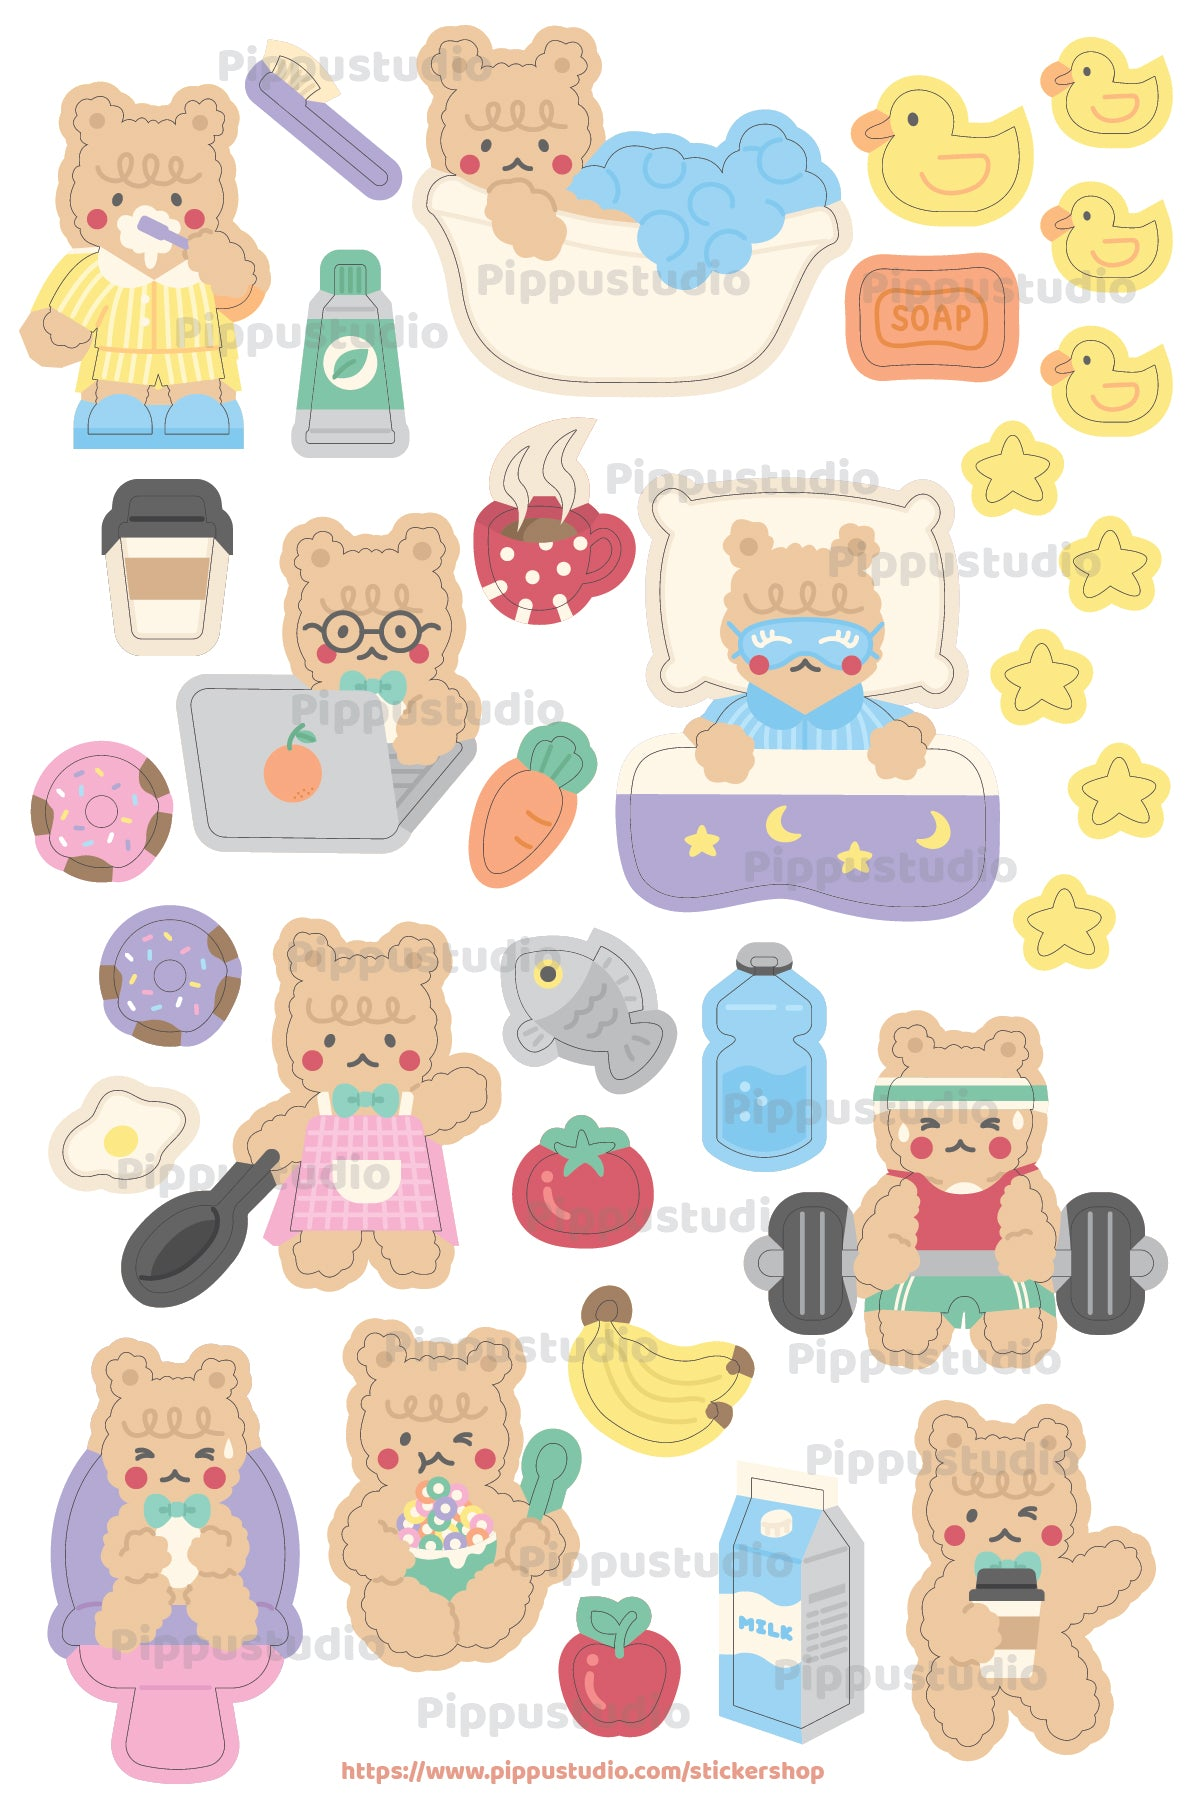 A55-Routine life sticker sheet